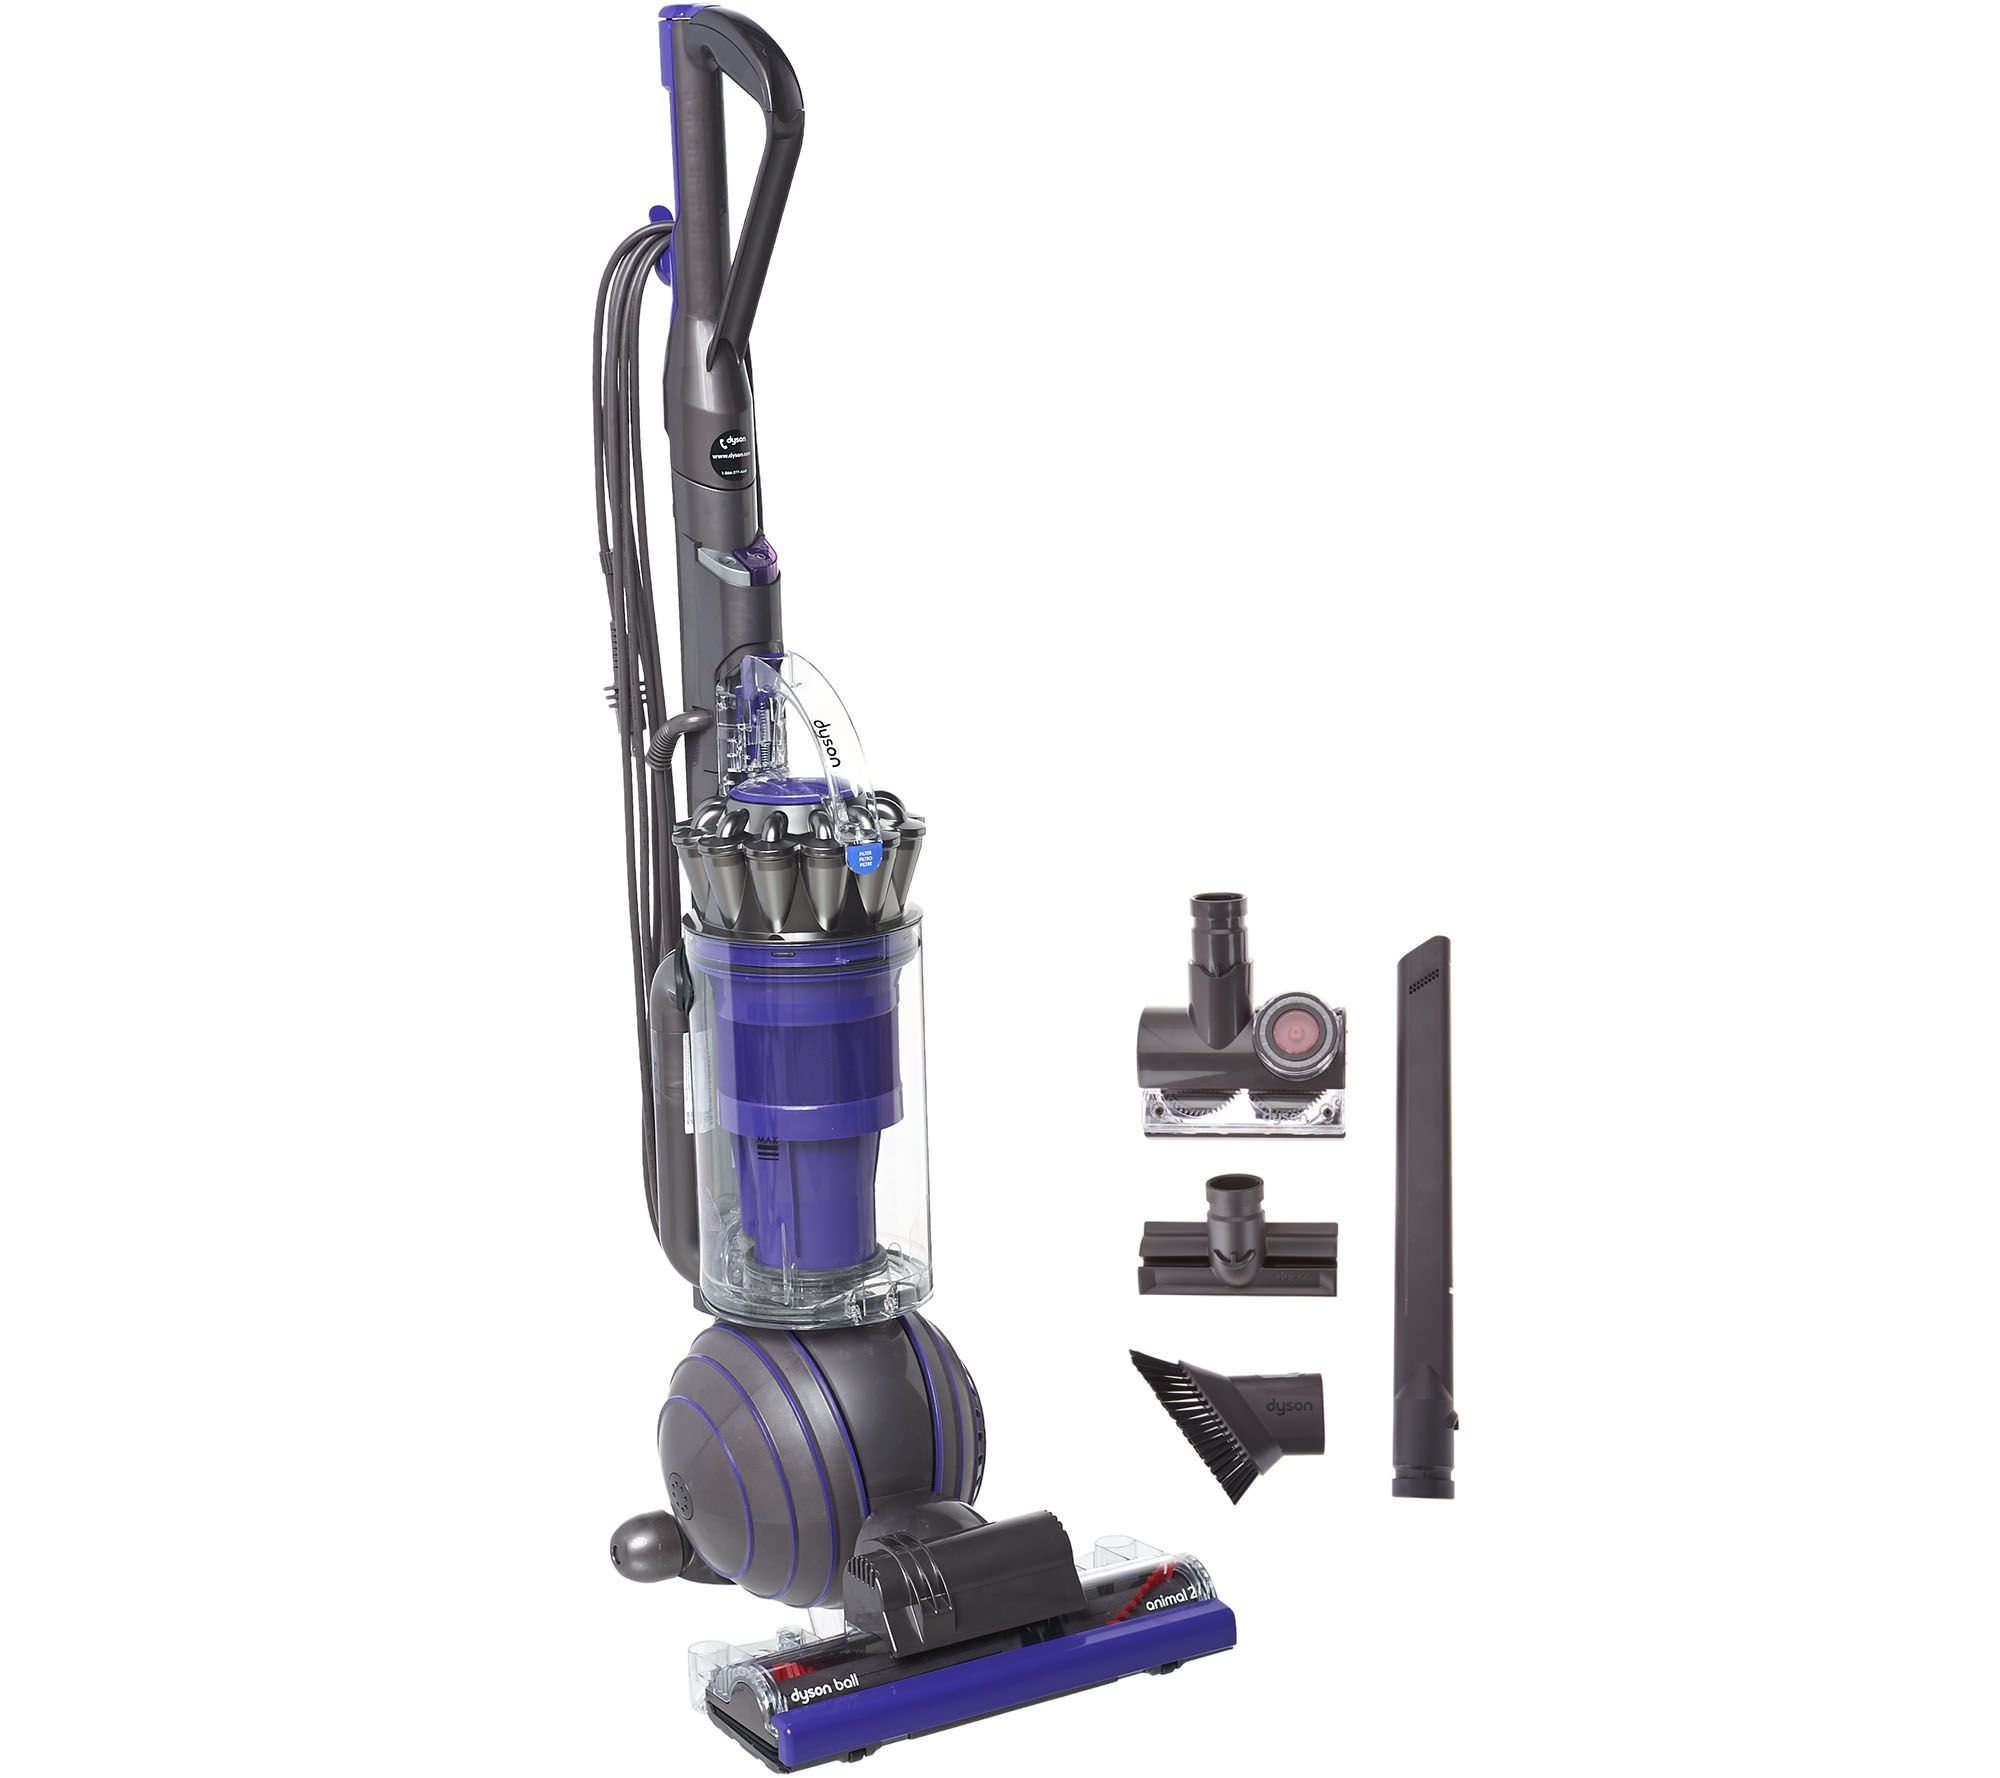 Dyson Ball Dyson Ball Animal 2 Upright Vacuum With Tools Qvc